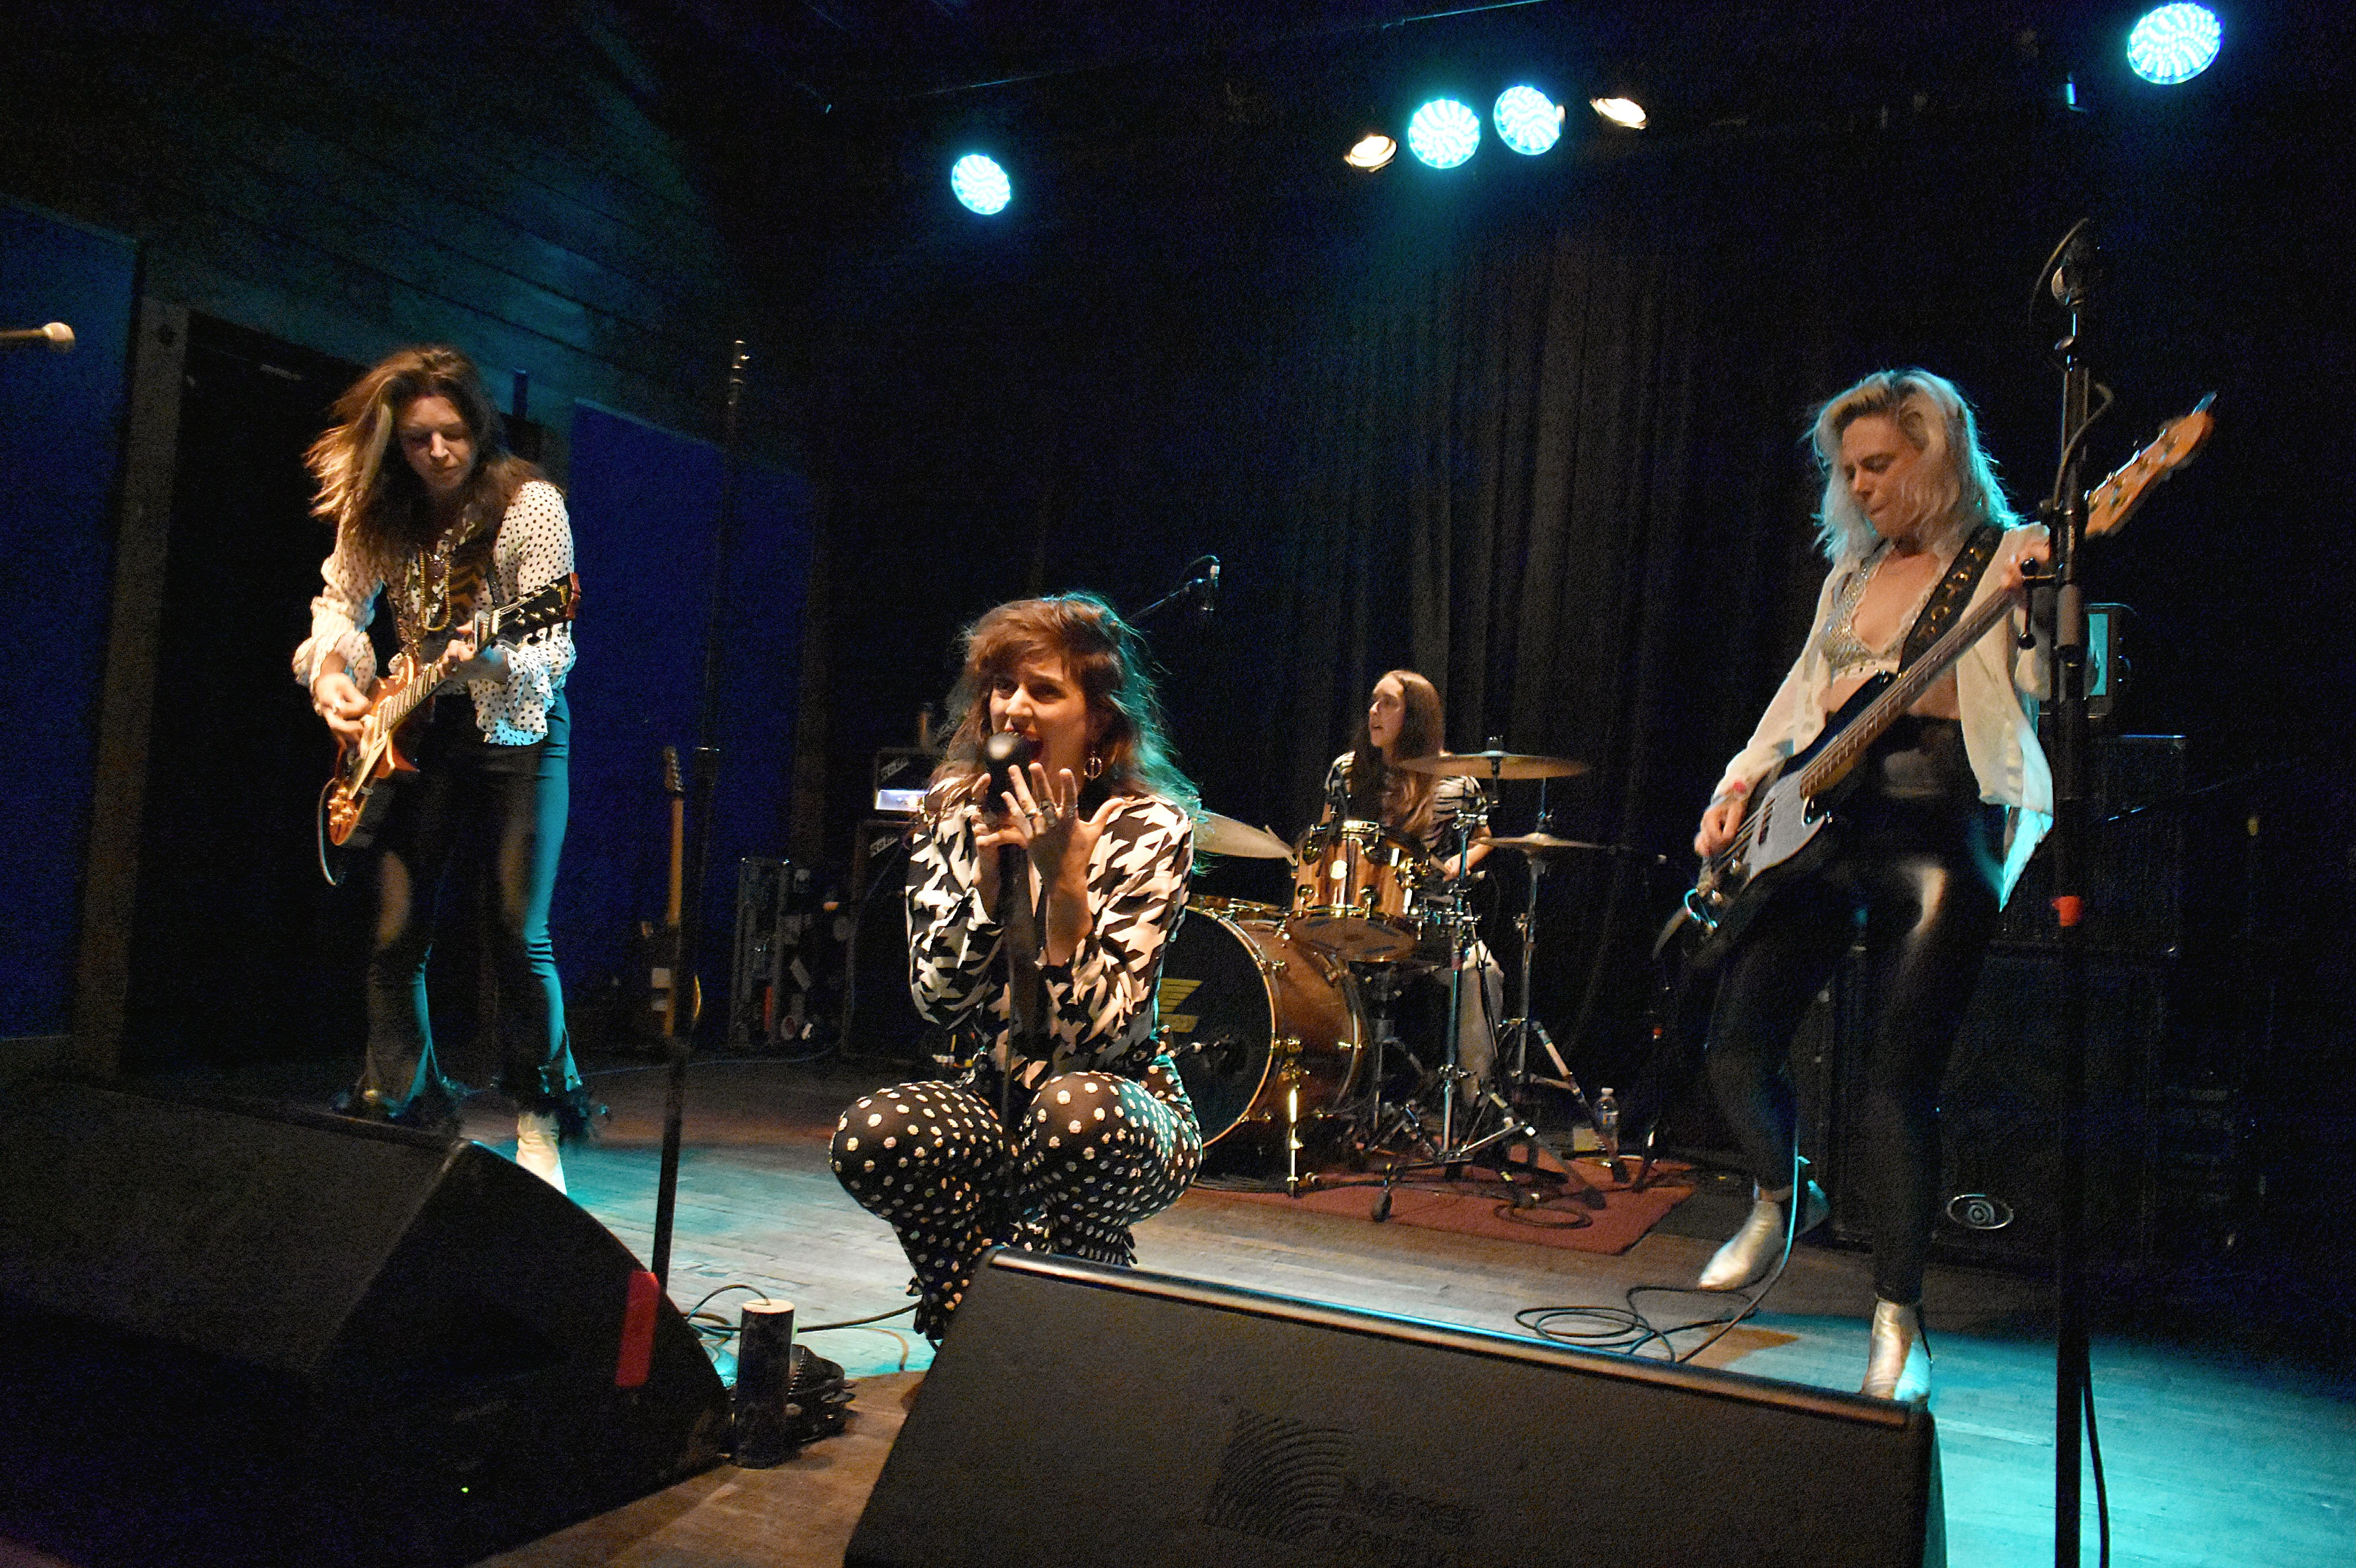 Thunderpussy Show Review